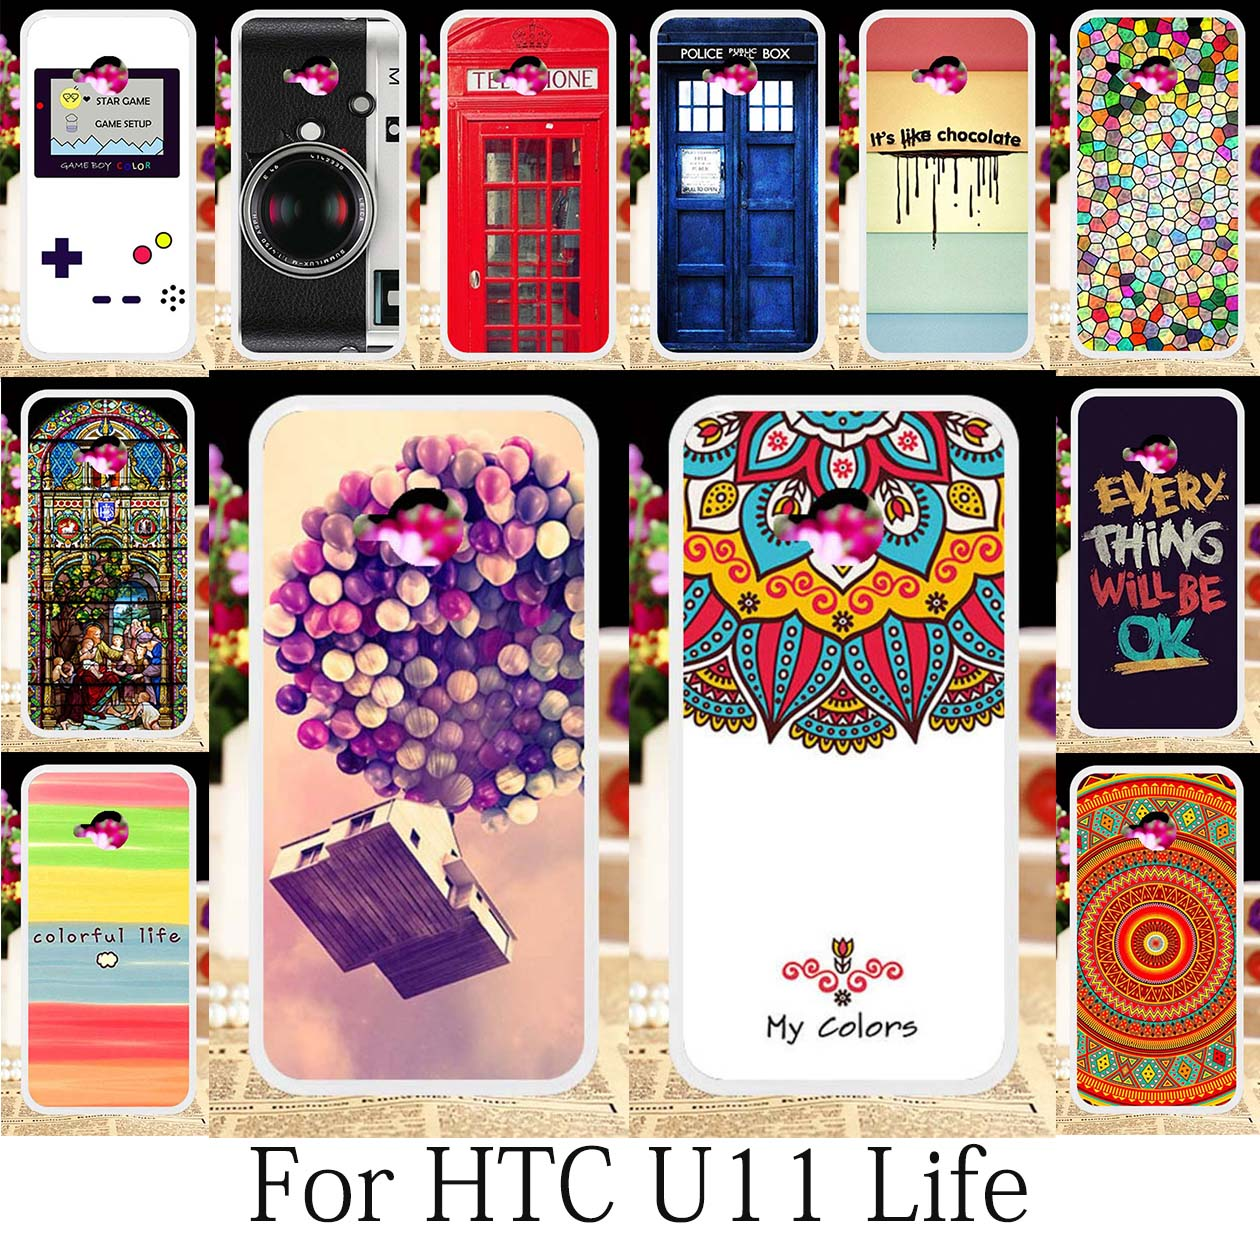 TAOYUNXI Cases For HTC U11 Life Cases HTC U11 Life Cover Silicone Smart Boys Case Cool Design Camera Games Housing Hood 5.2 inch